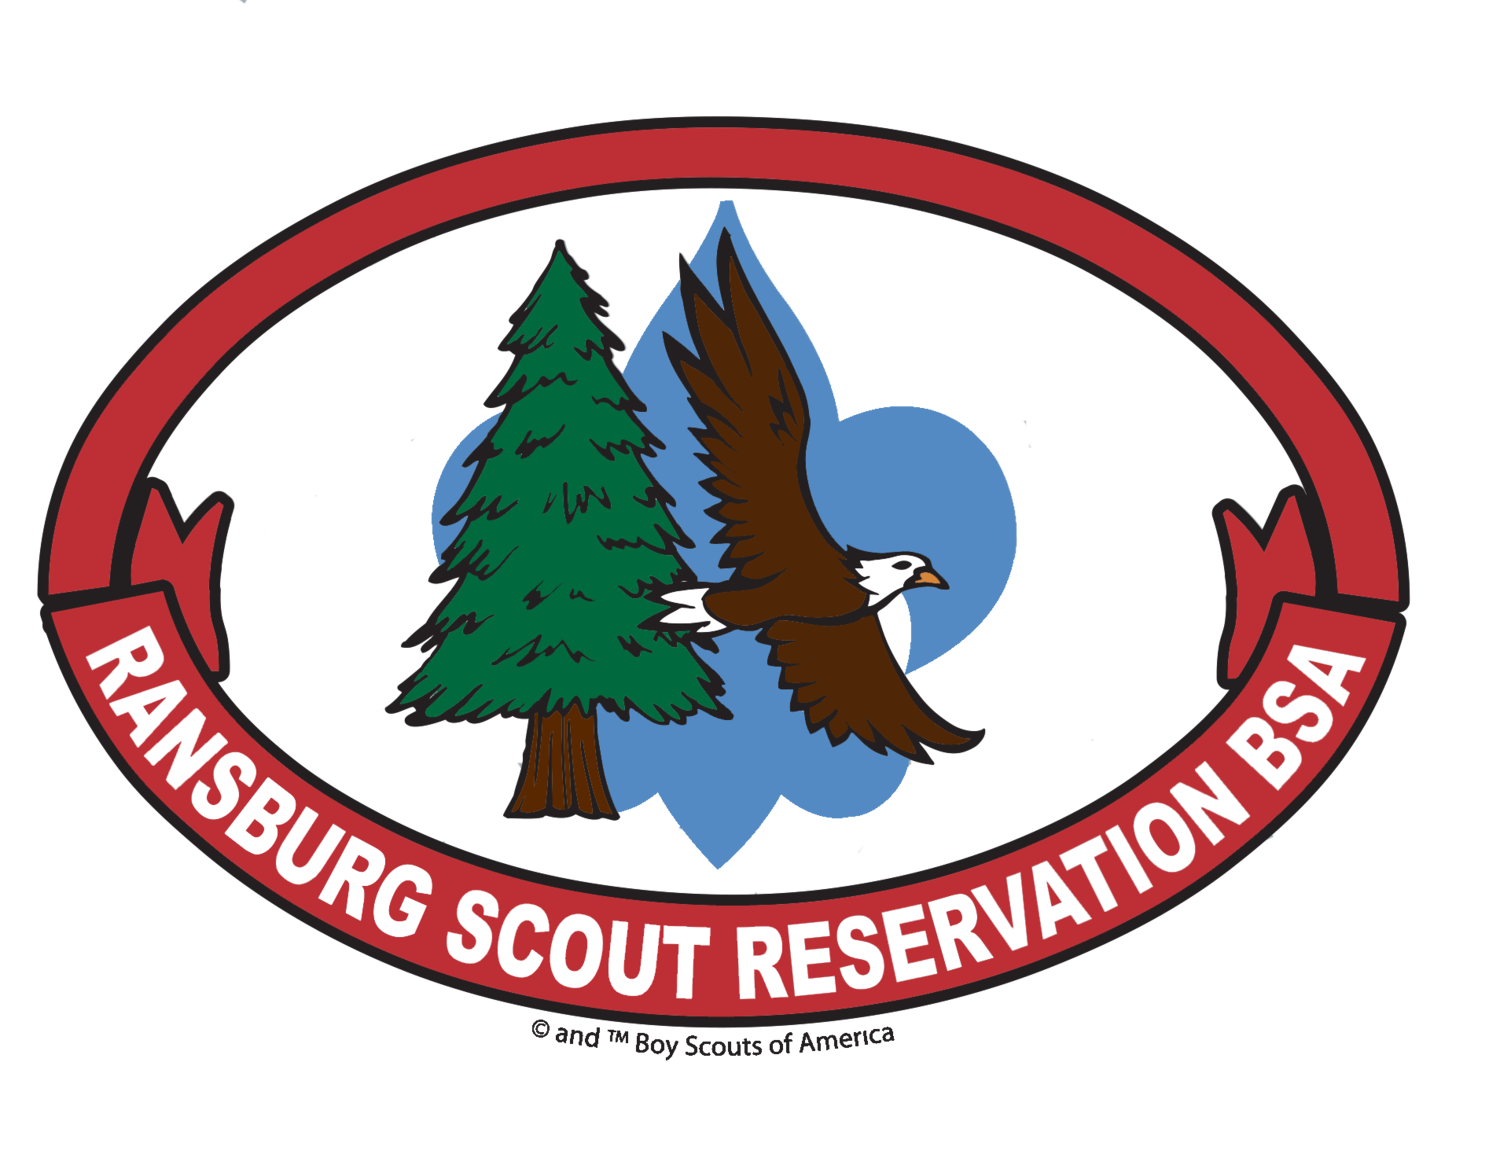 image library stock Ransburg Scout Reservation